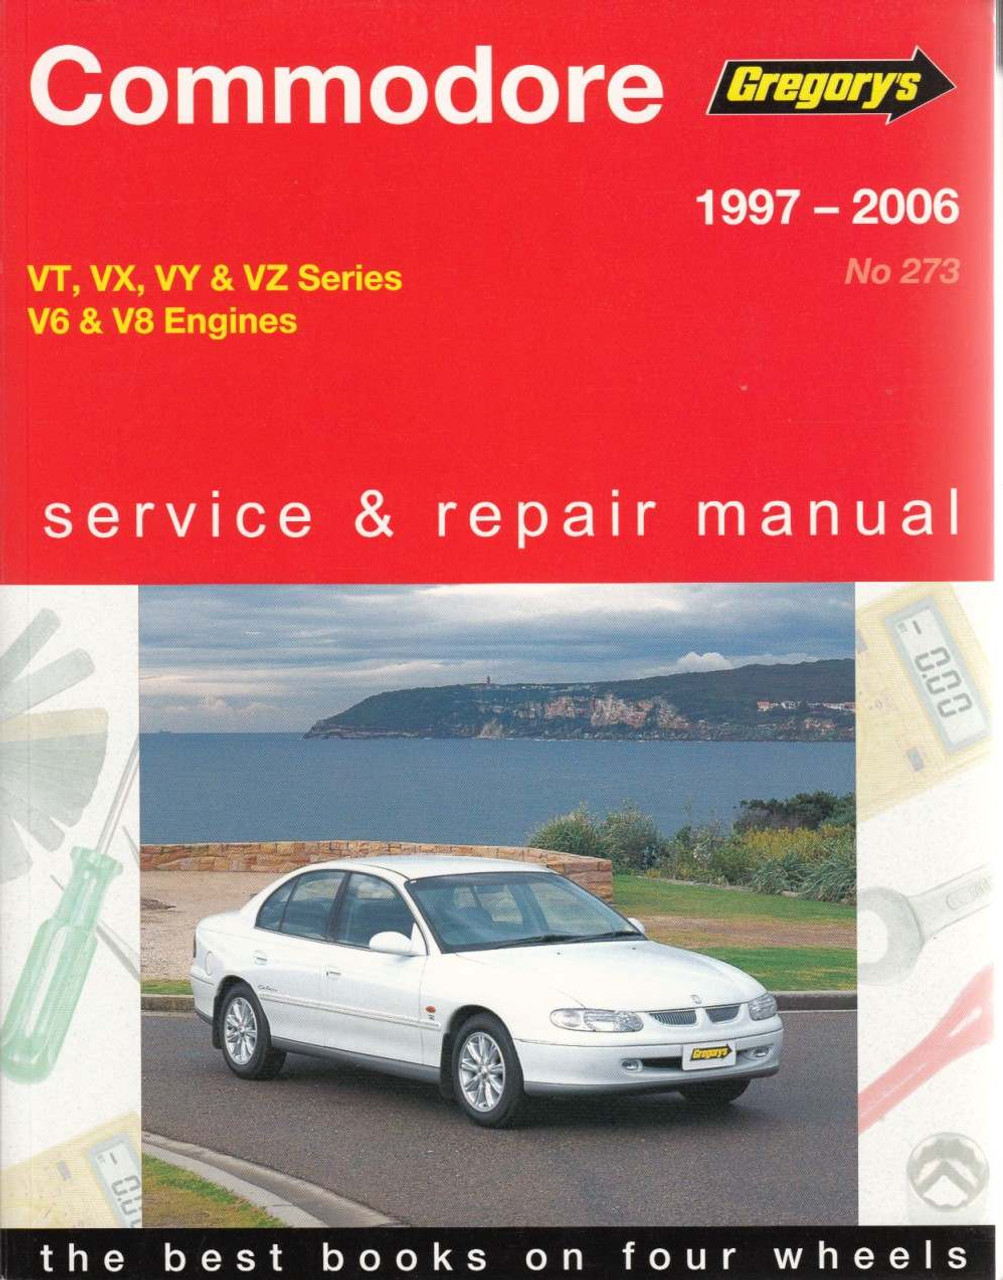 holden commodore vt vx vy vz series v6 amp v8 1997 2006 rh automotobookshop com au holden owners manual holden barina owners manual download